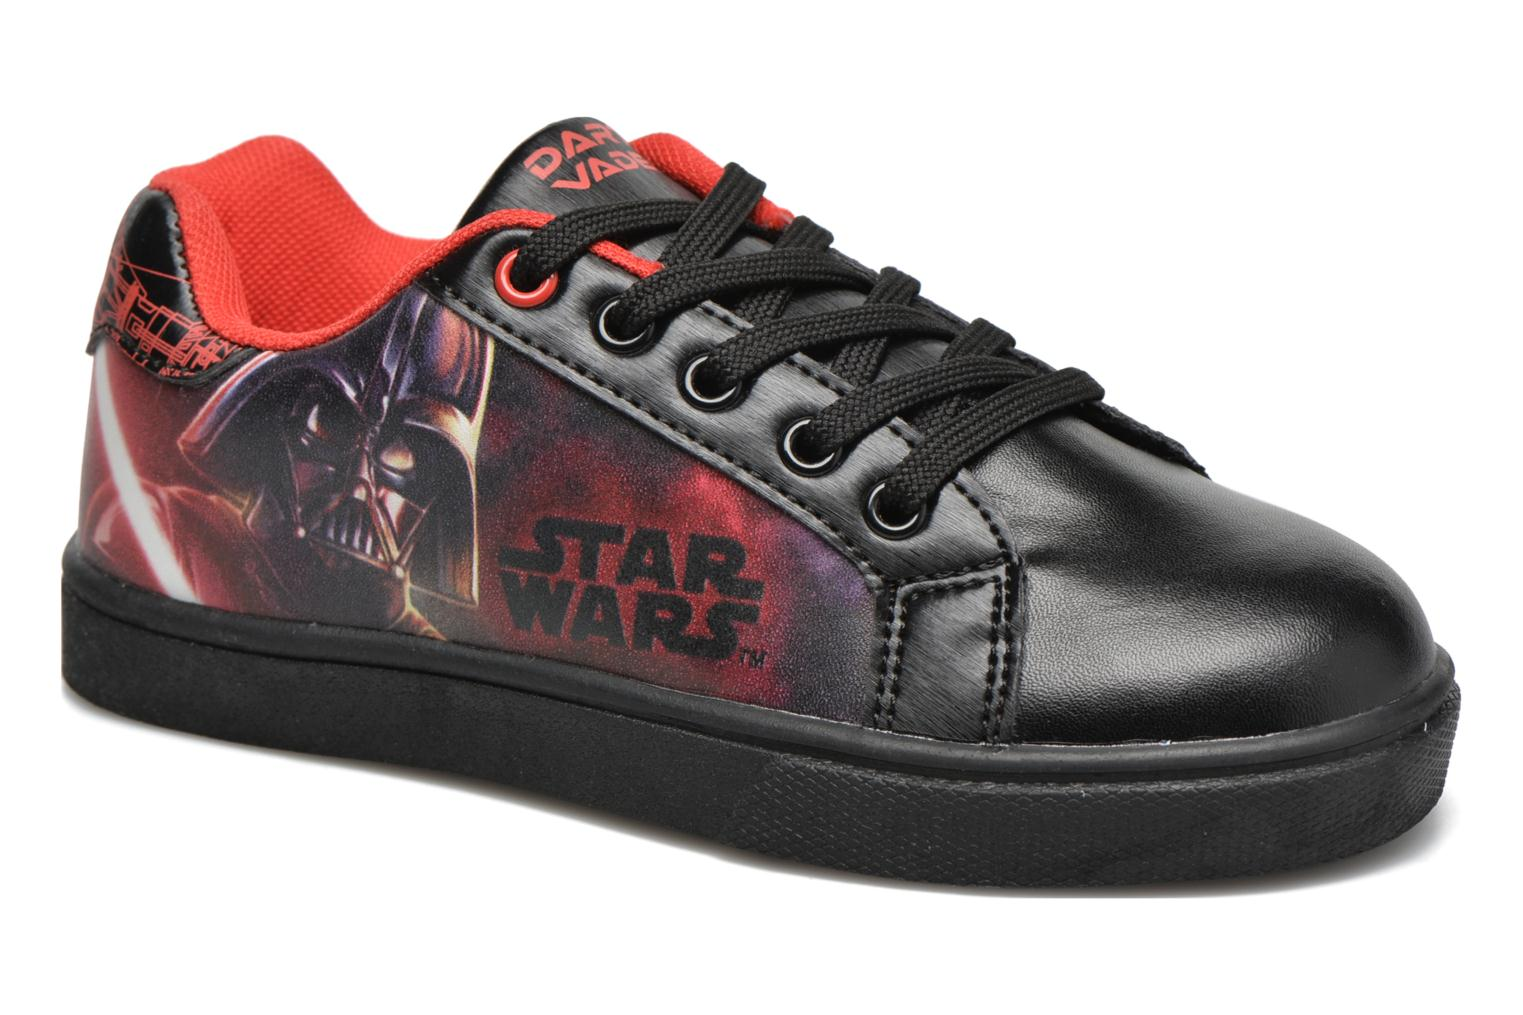 Baskets Star Wars Grief Star Wars Noir vue détail/paire